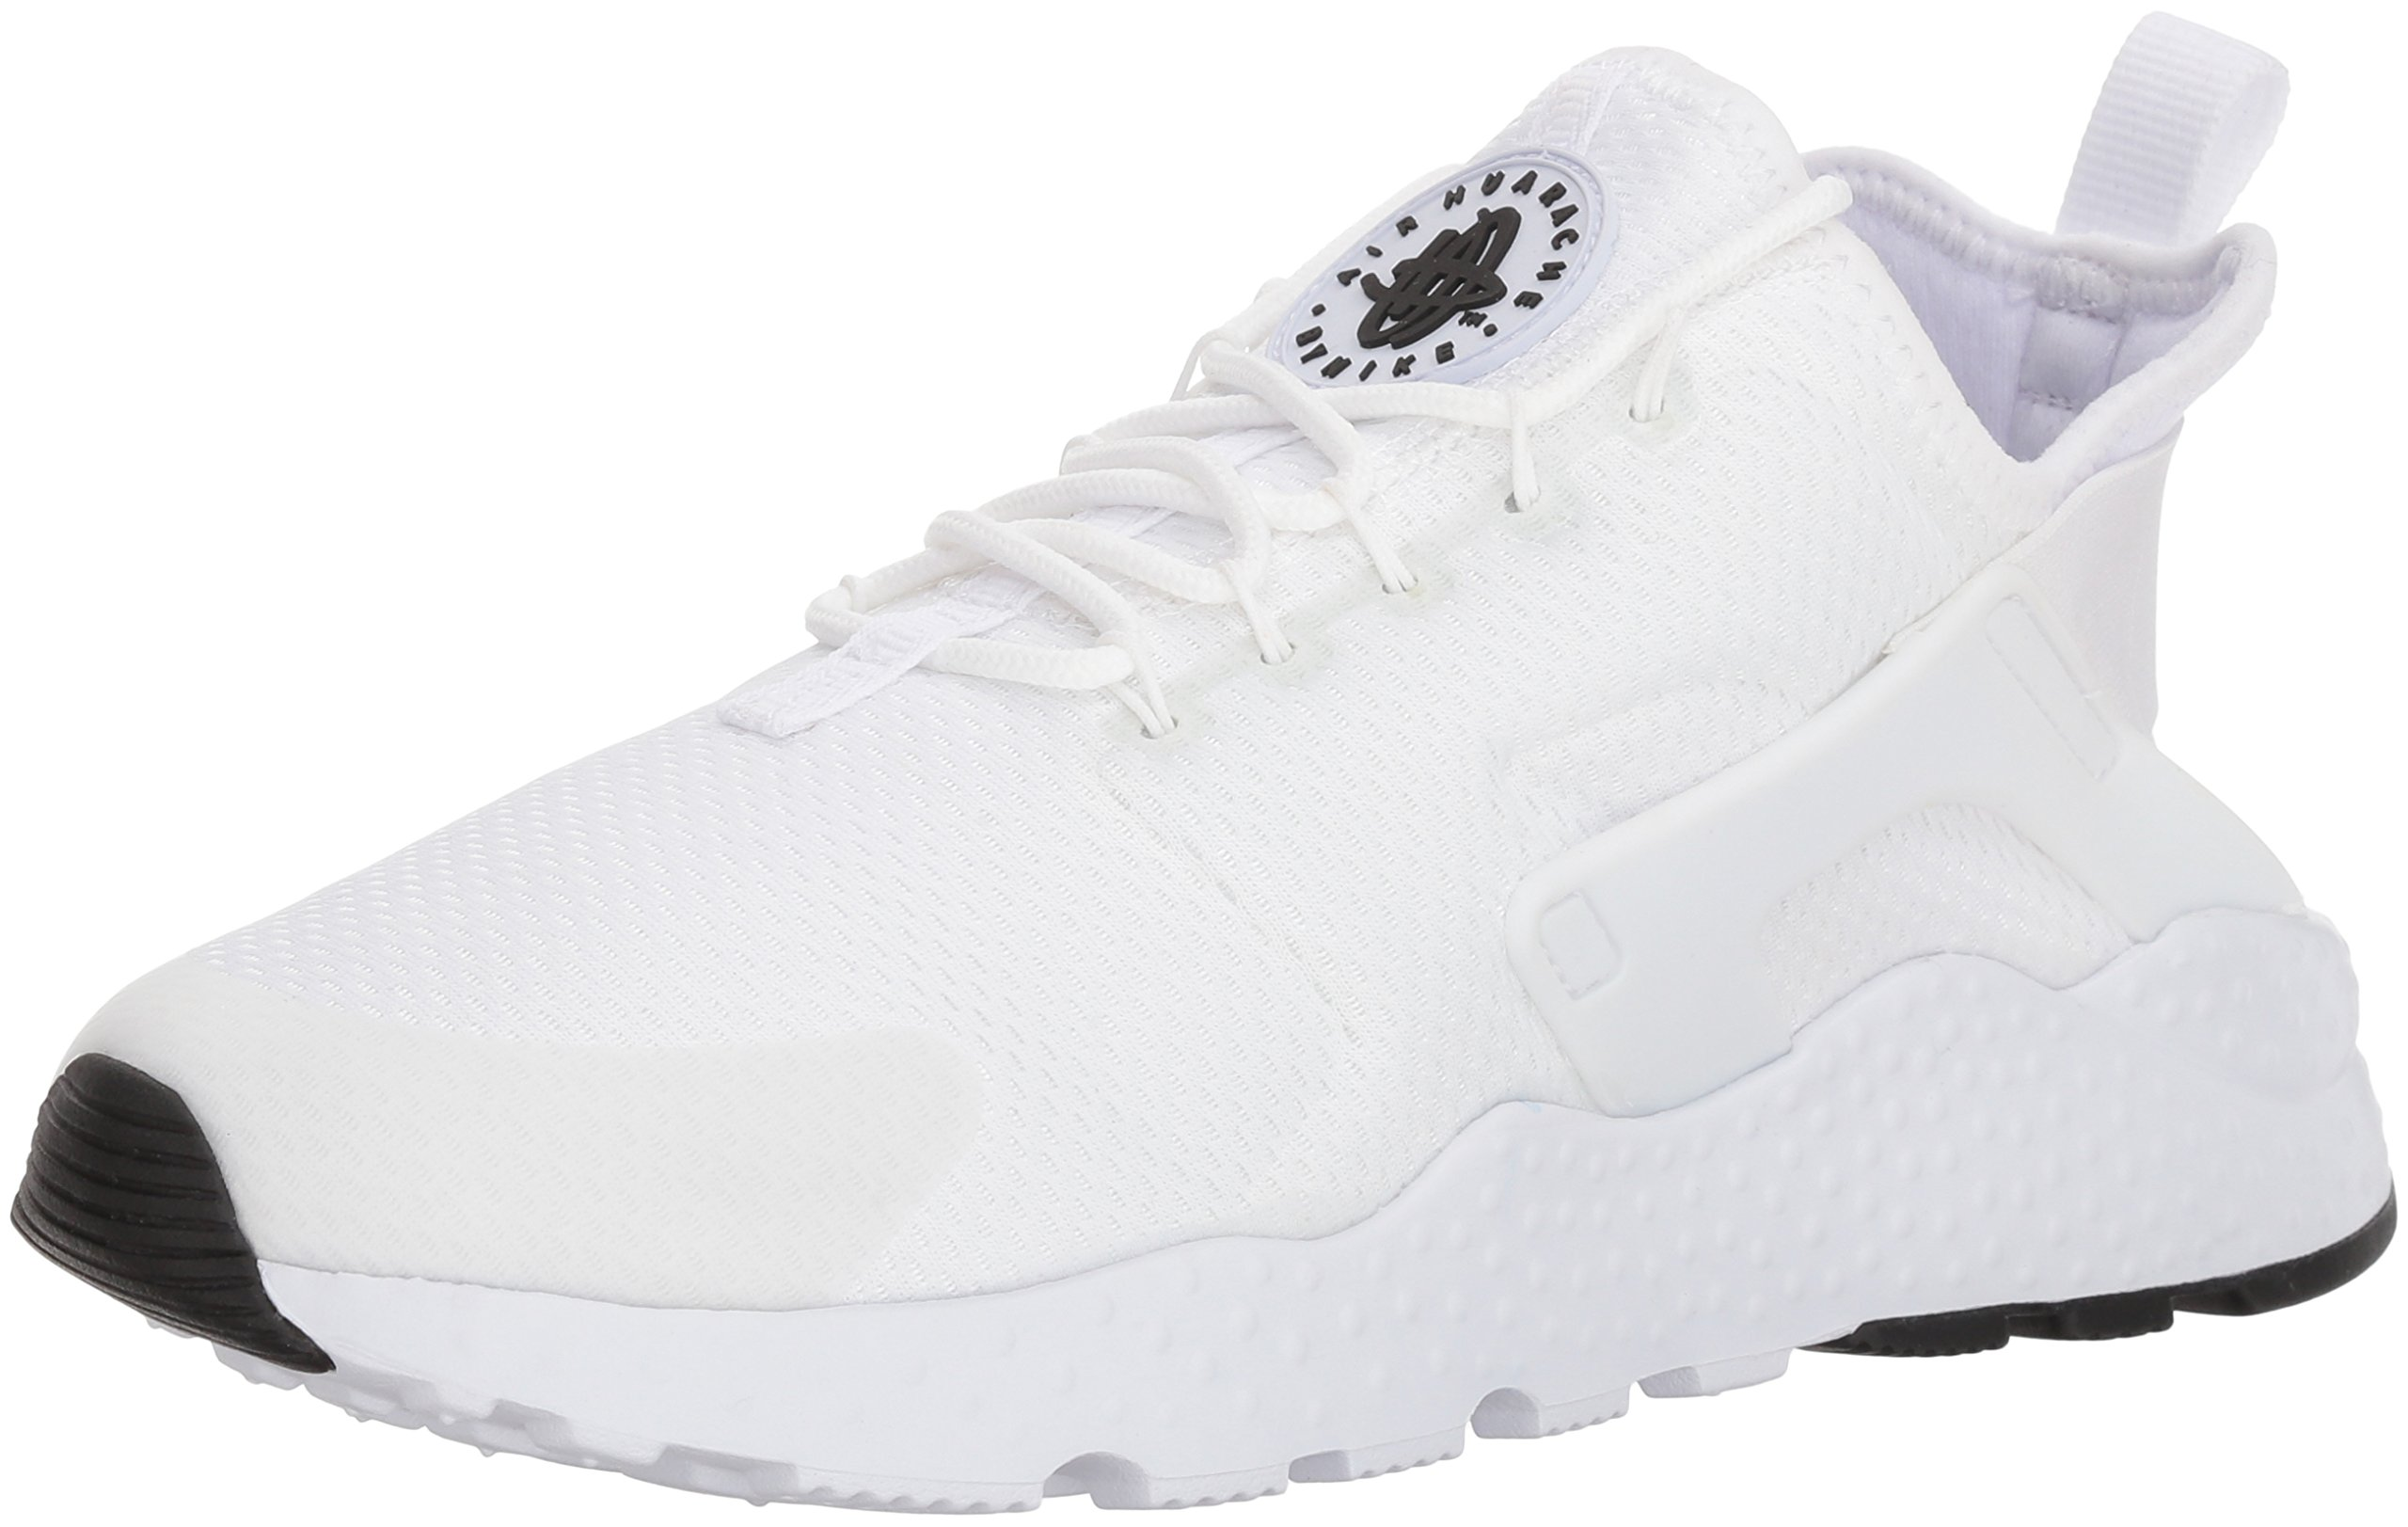 hot sale online 69b9e baf25 Galleon - Nike Air Huarache Run Ultra Women s Running Shoes  White White-White-Black 819151-102 (12 B(M) US)